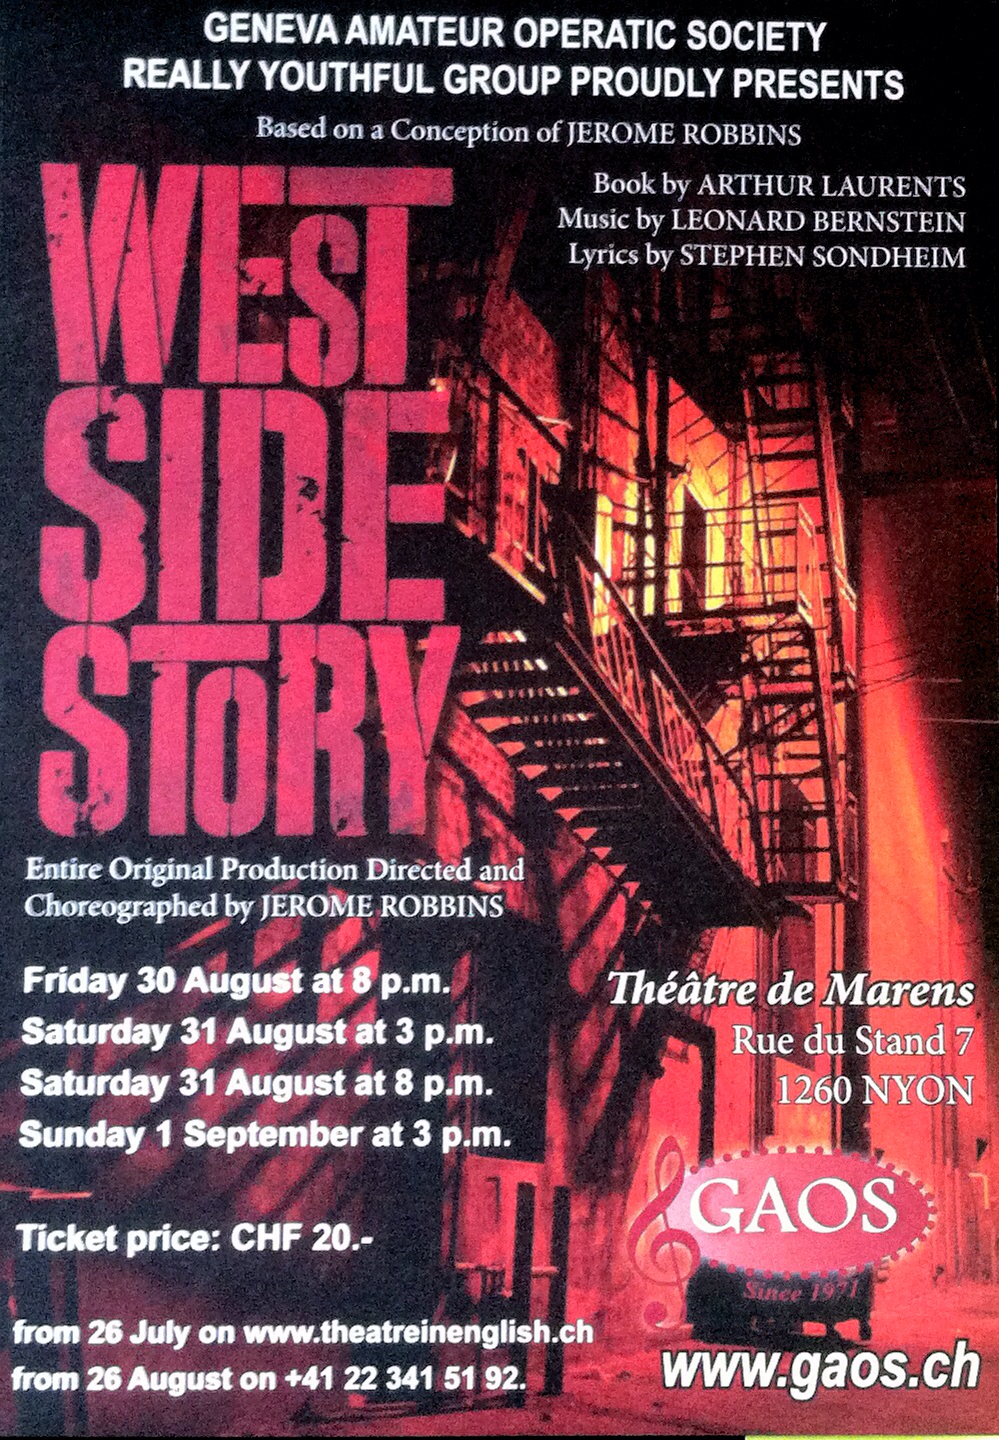 Don't miss Jerome Robbins' production of West Side Story